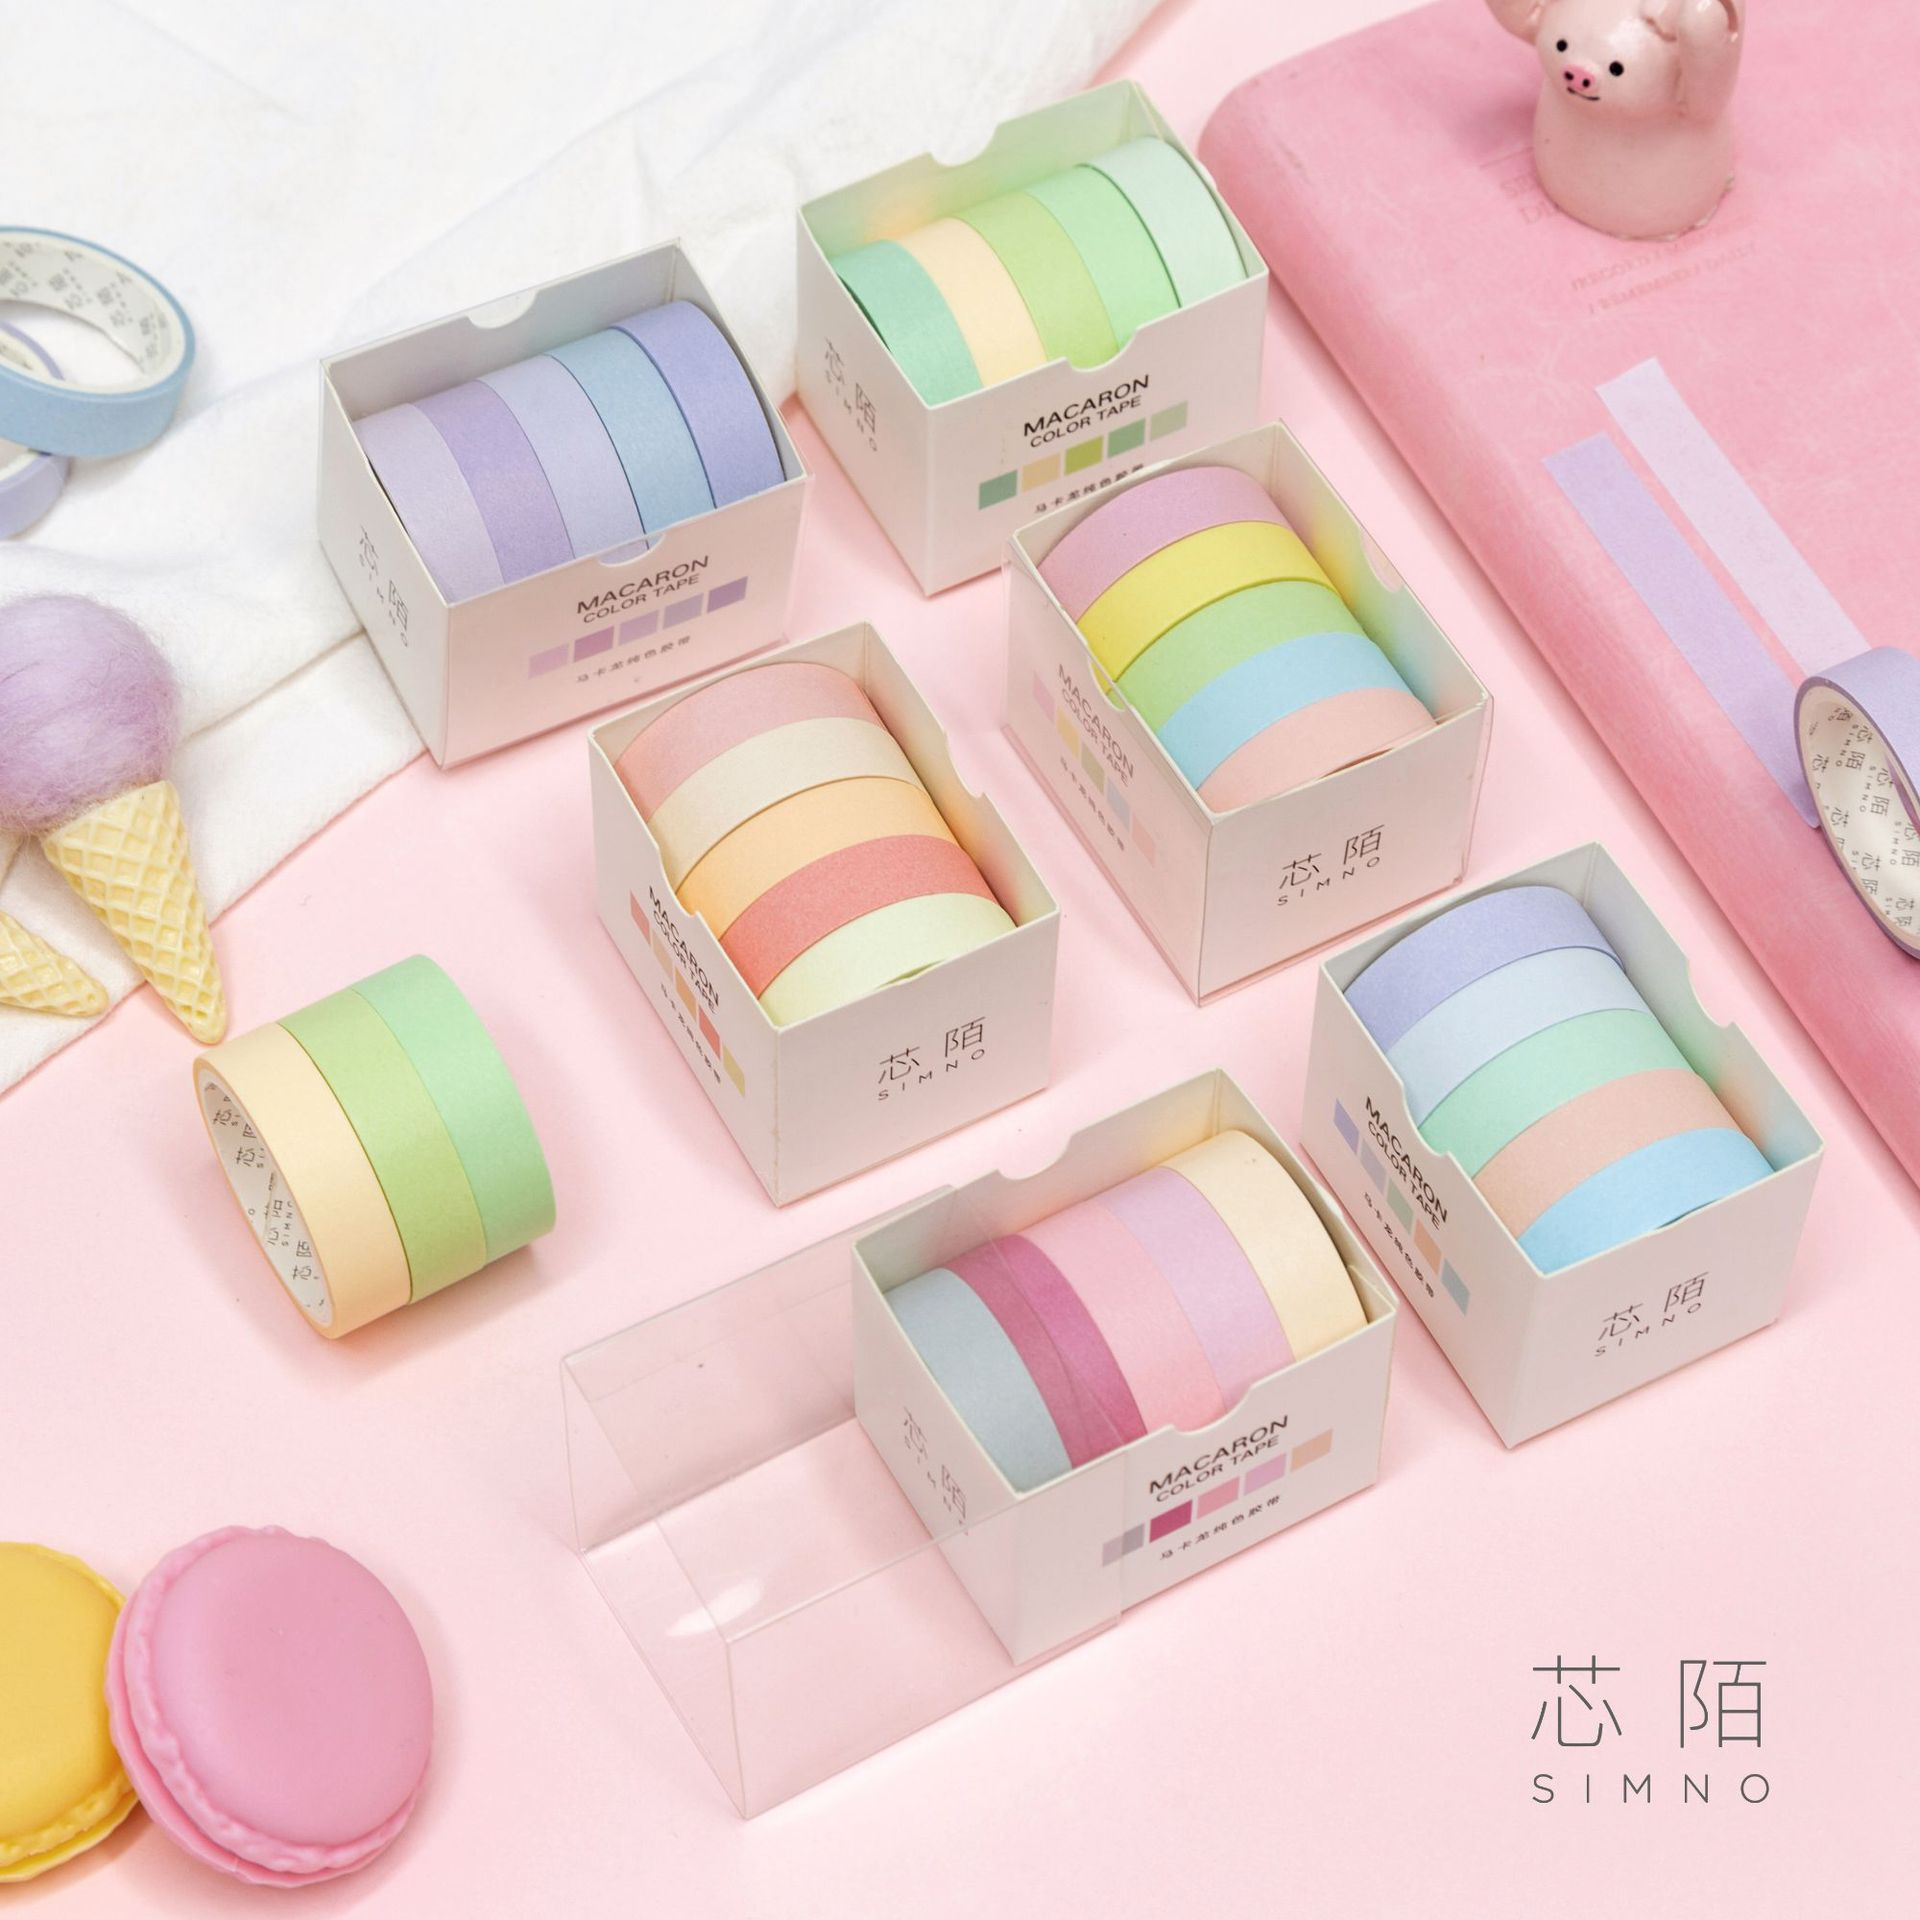 5 Pcs/pack Pure Macaroon Color Base Decorative Washi Tape Set DIY Scrapbooking Masking Craft Tape School Office Supply